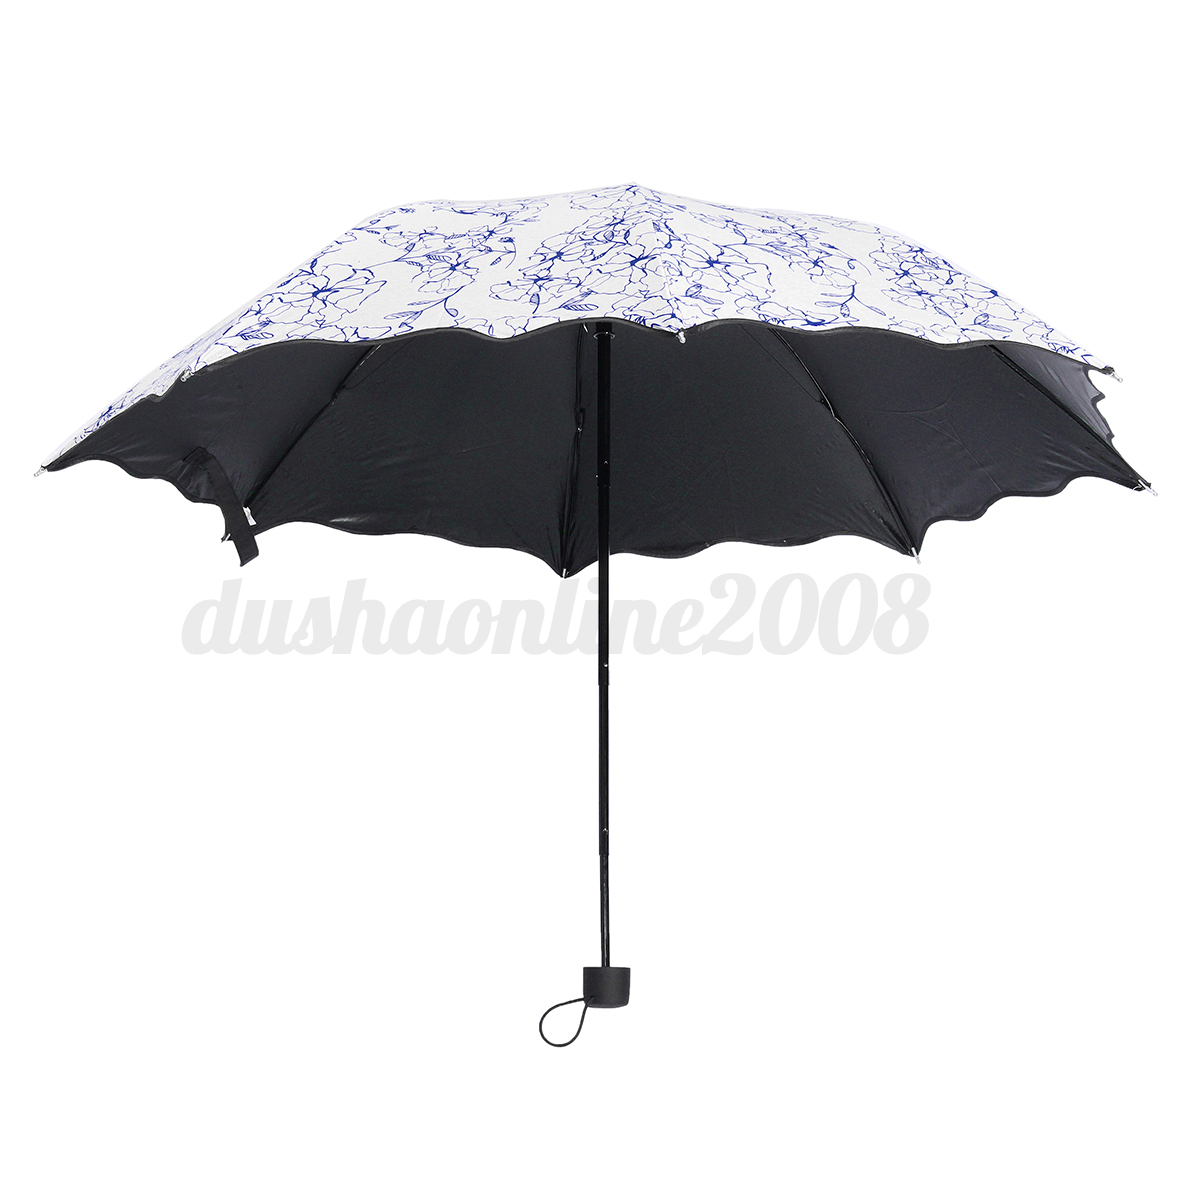 50 anti uv vent pluie soleil umbrella parapluie ombrelle. Black Bedroom Furniture Sets. Home Design Ideas